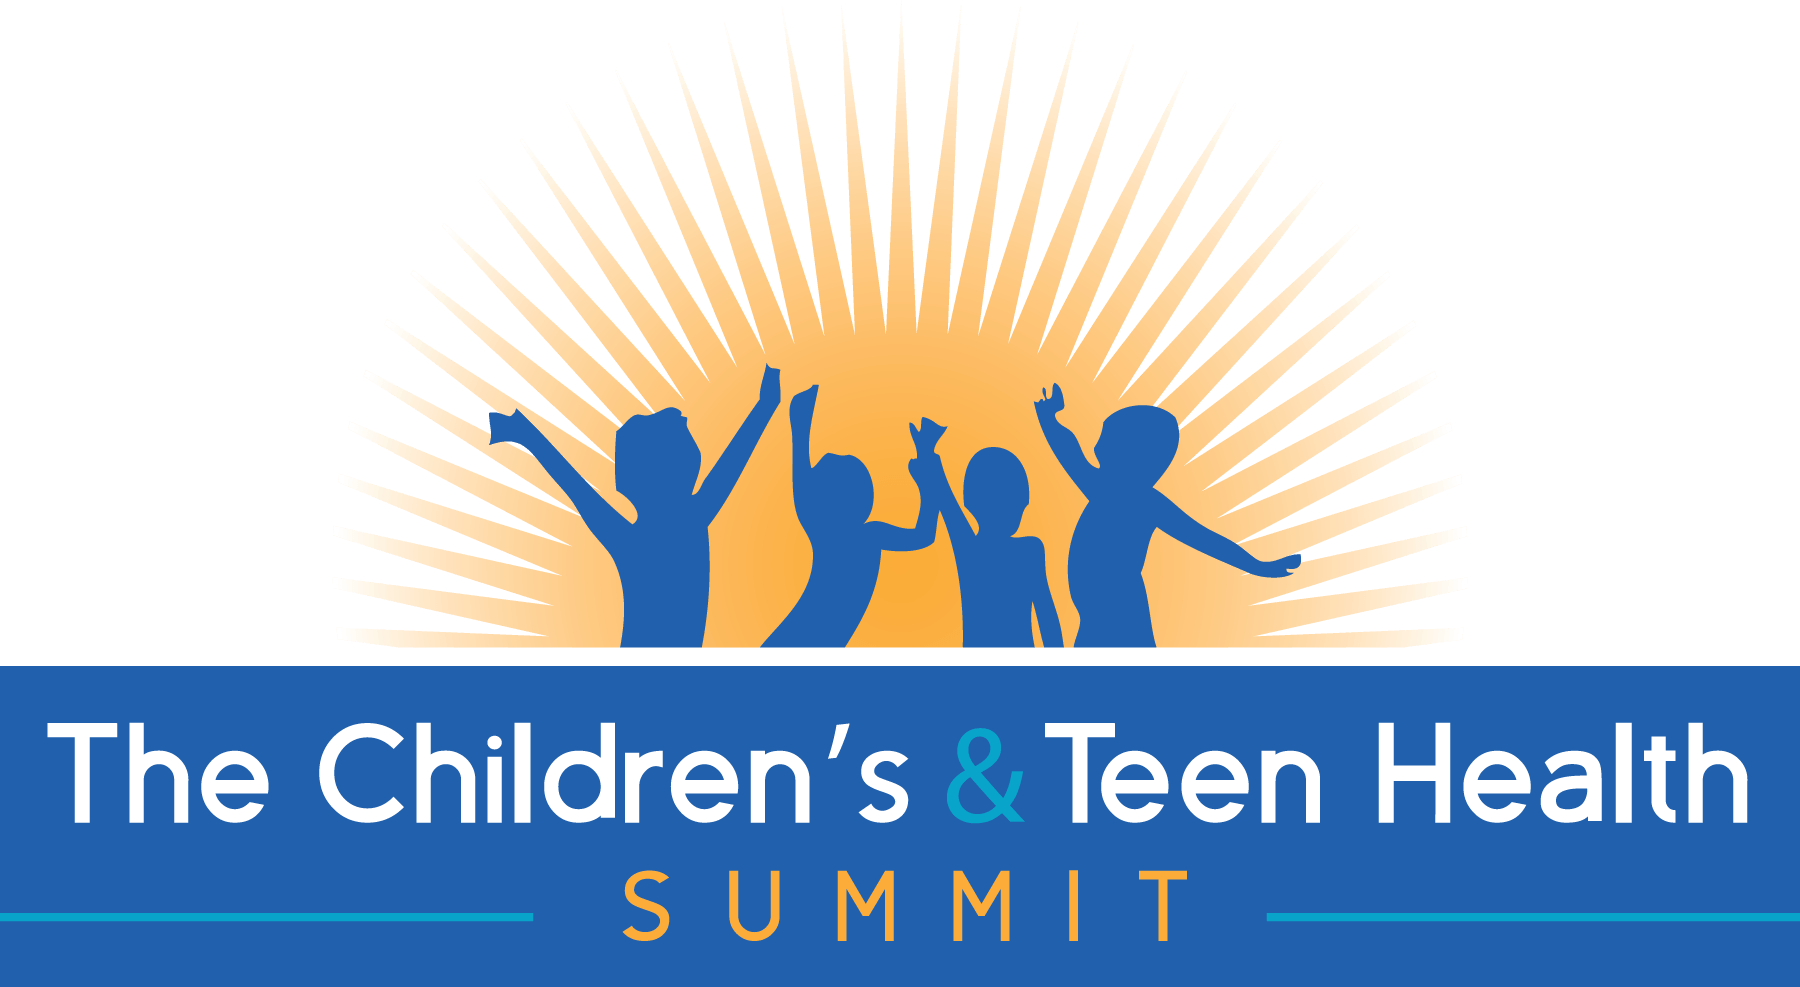 The Children & Teen Health Summit